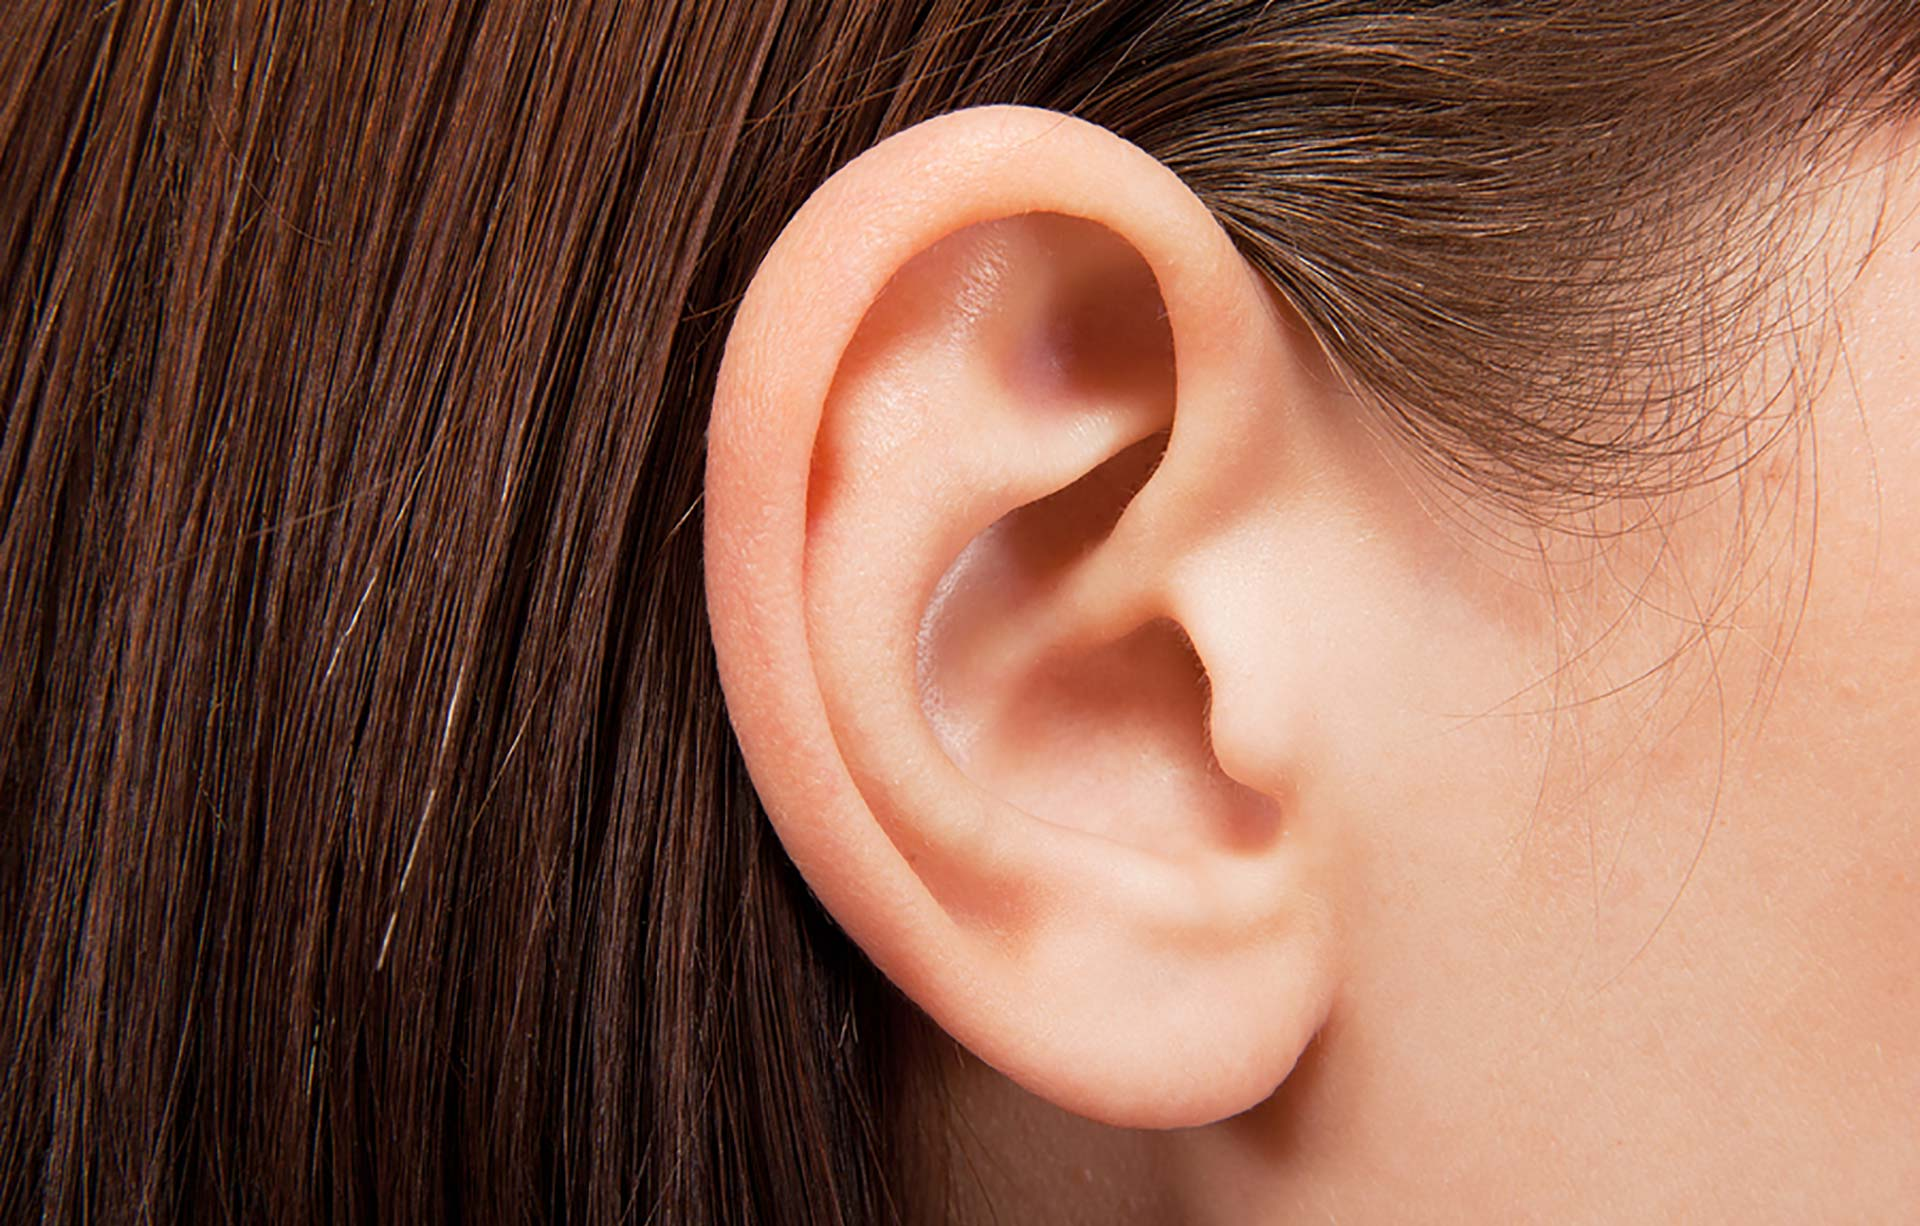 Ear Photo Gallery